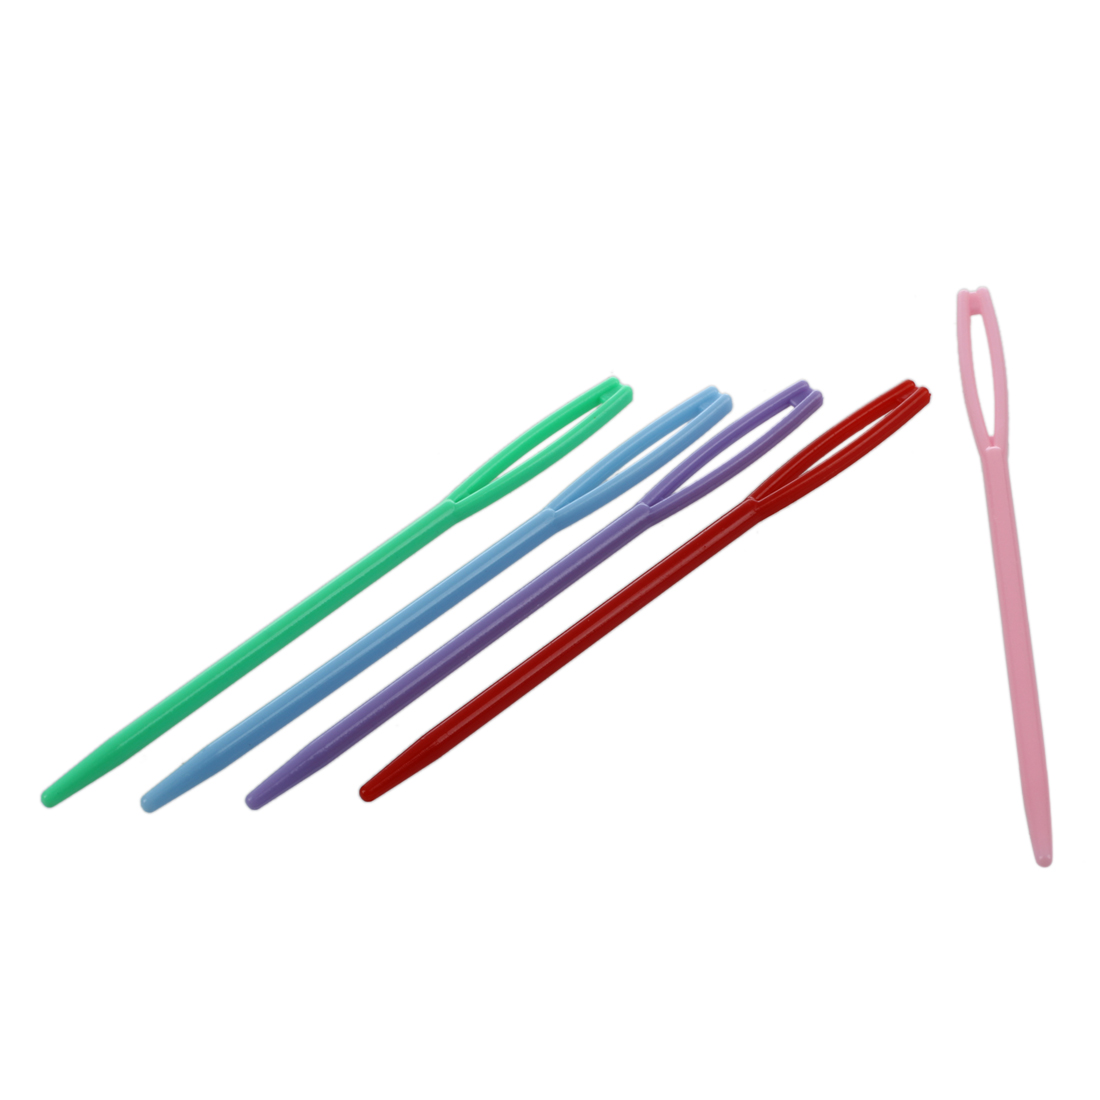 Details about   10Pcs Cute Children's Plastic Needles for Sewing Size Small Large F9T3